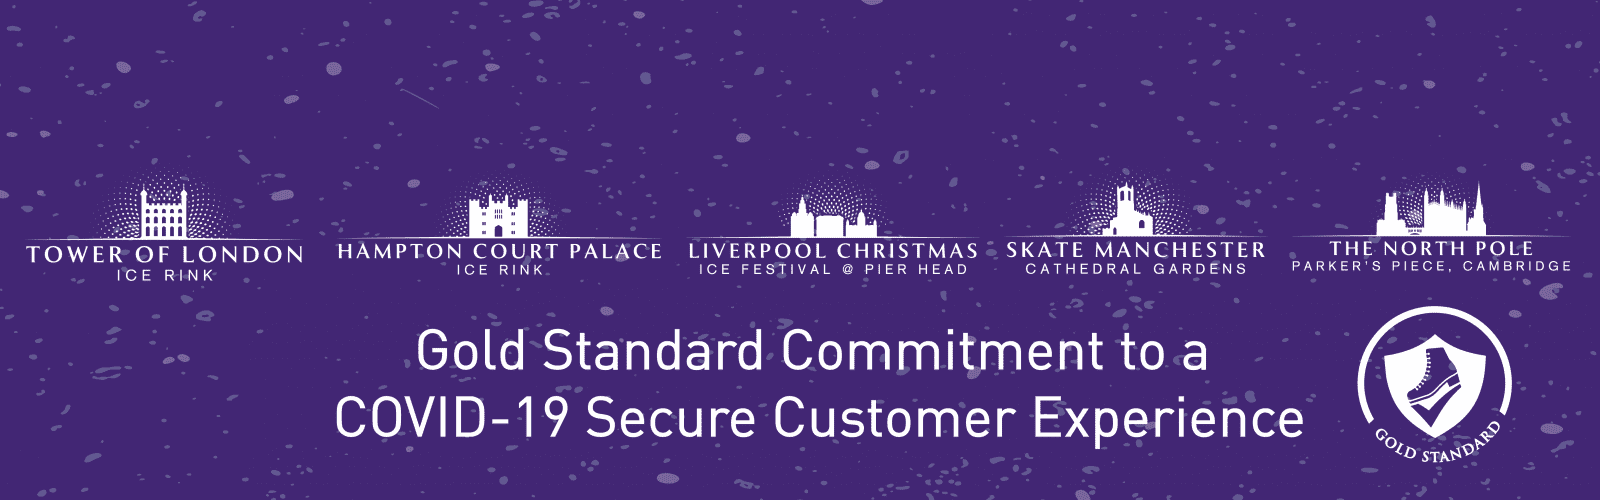 Gold Standard Commitment to a COVID-19 Secure Customer Experience